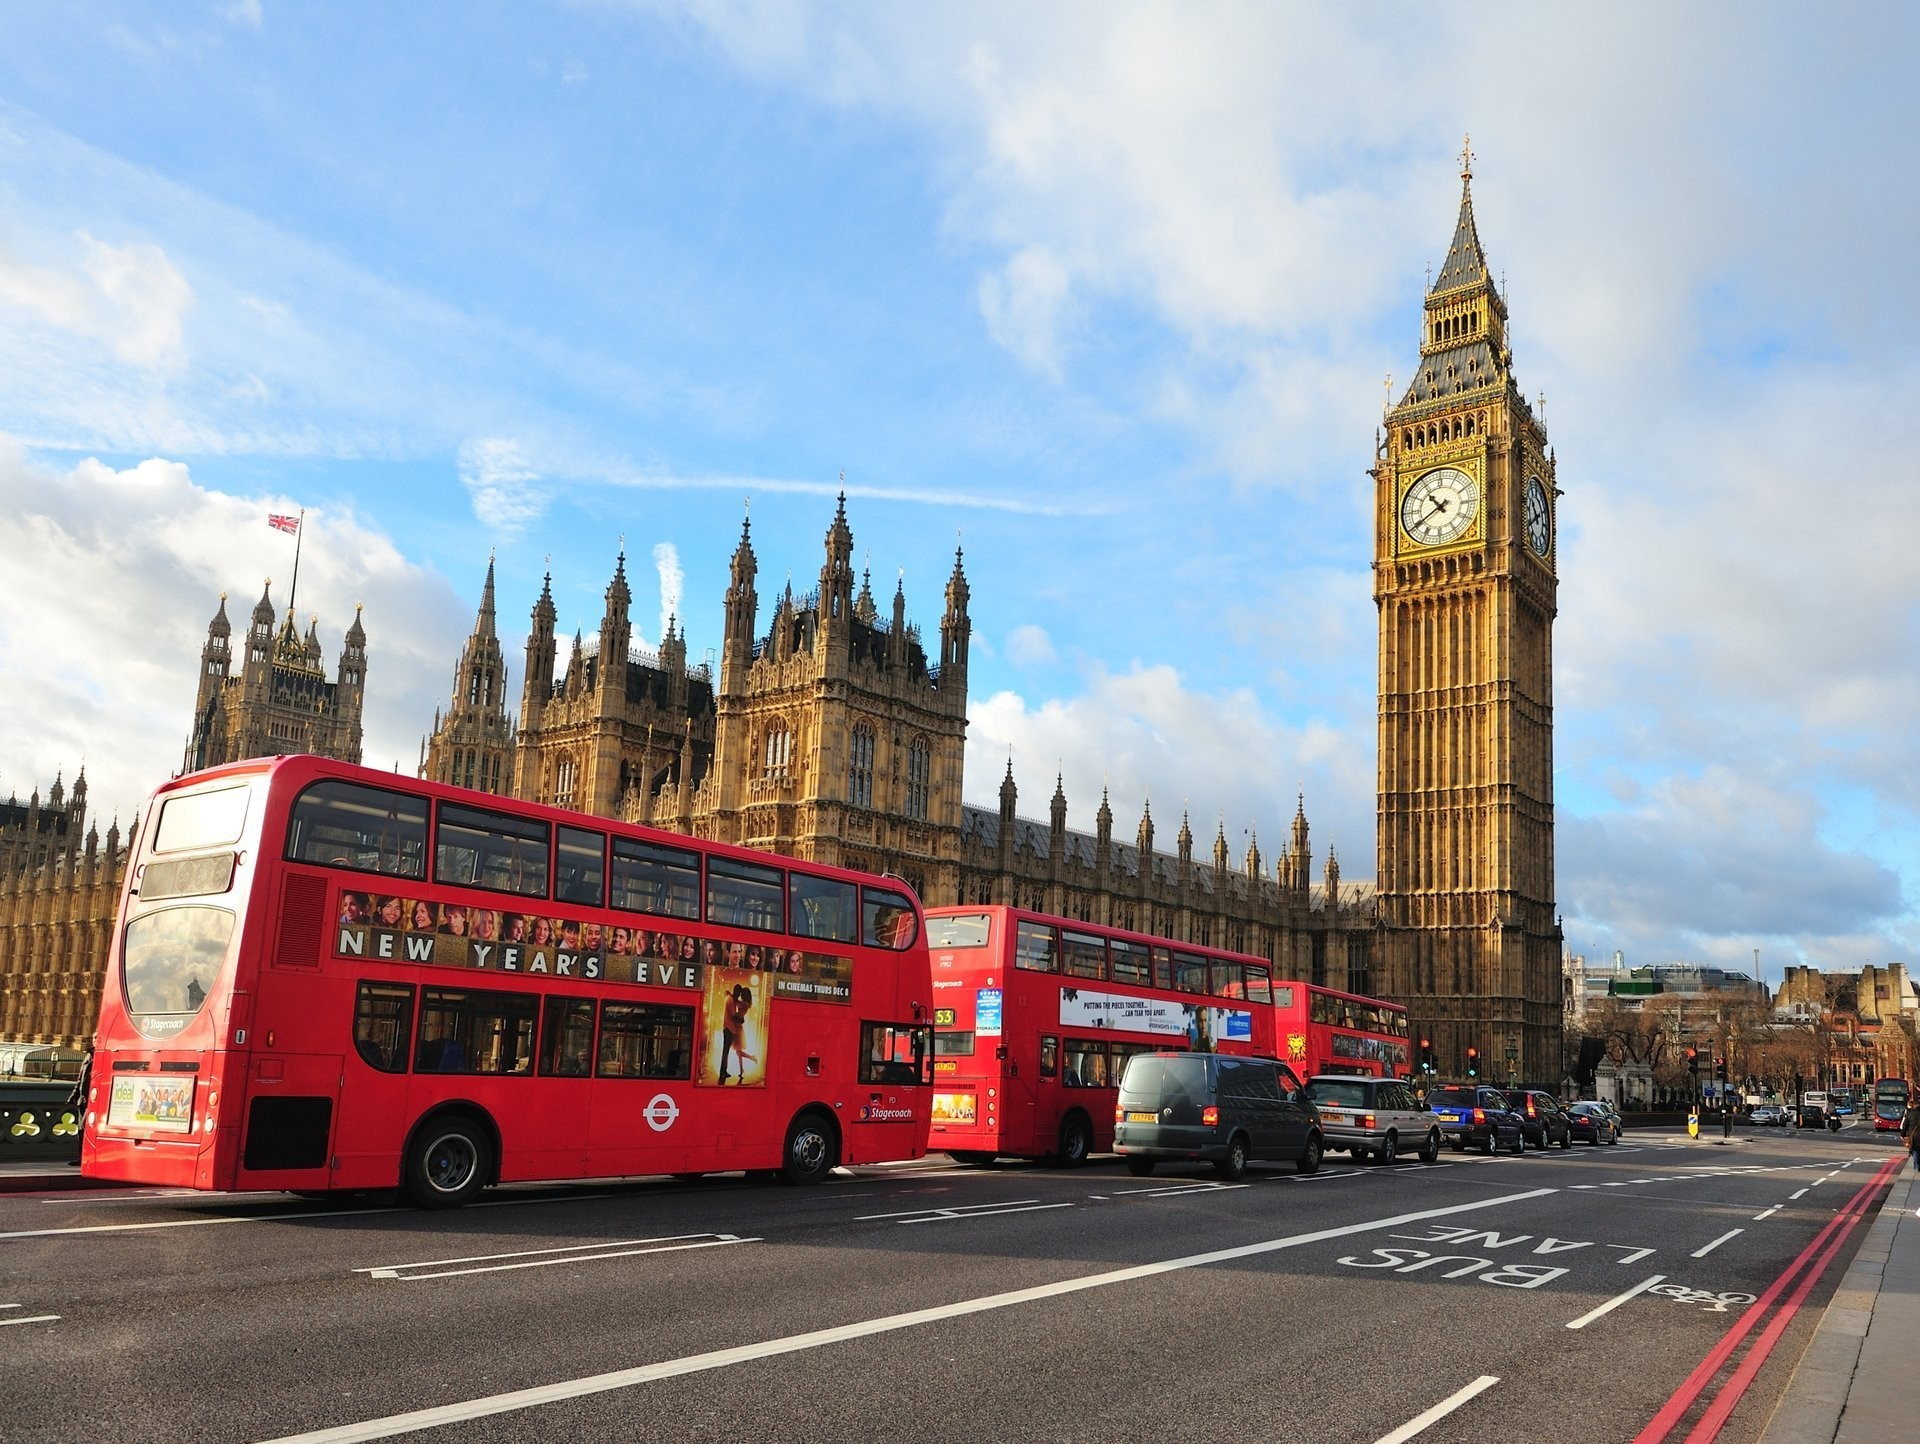 1920x1444 london england big ben westminster abbey city street bus